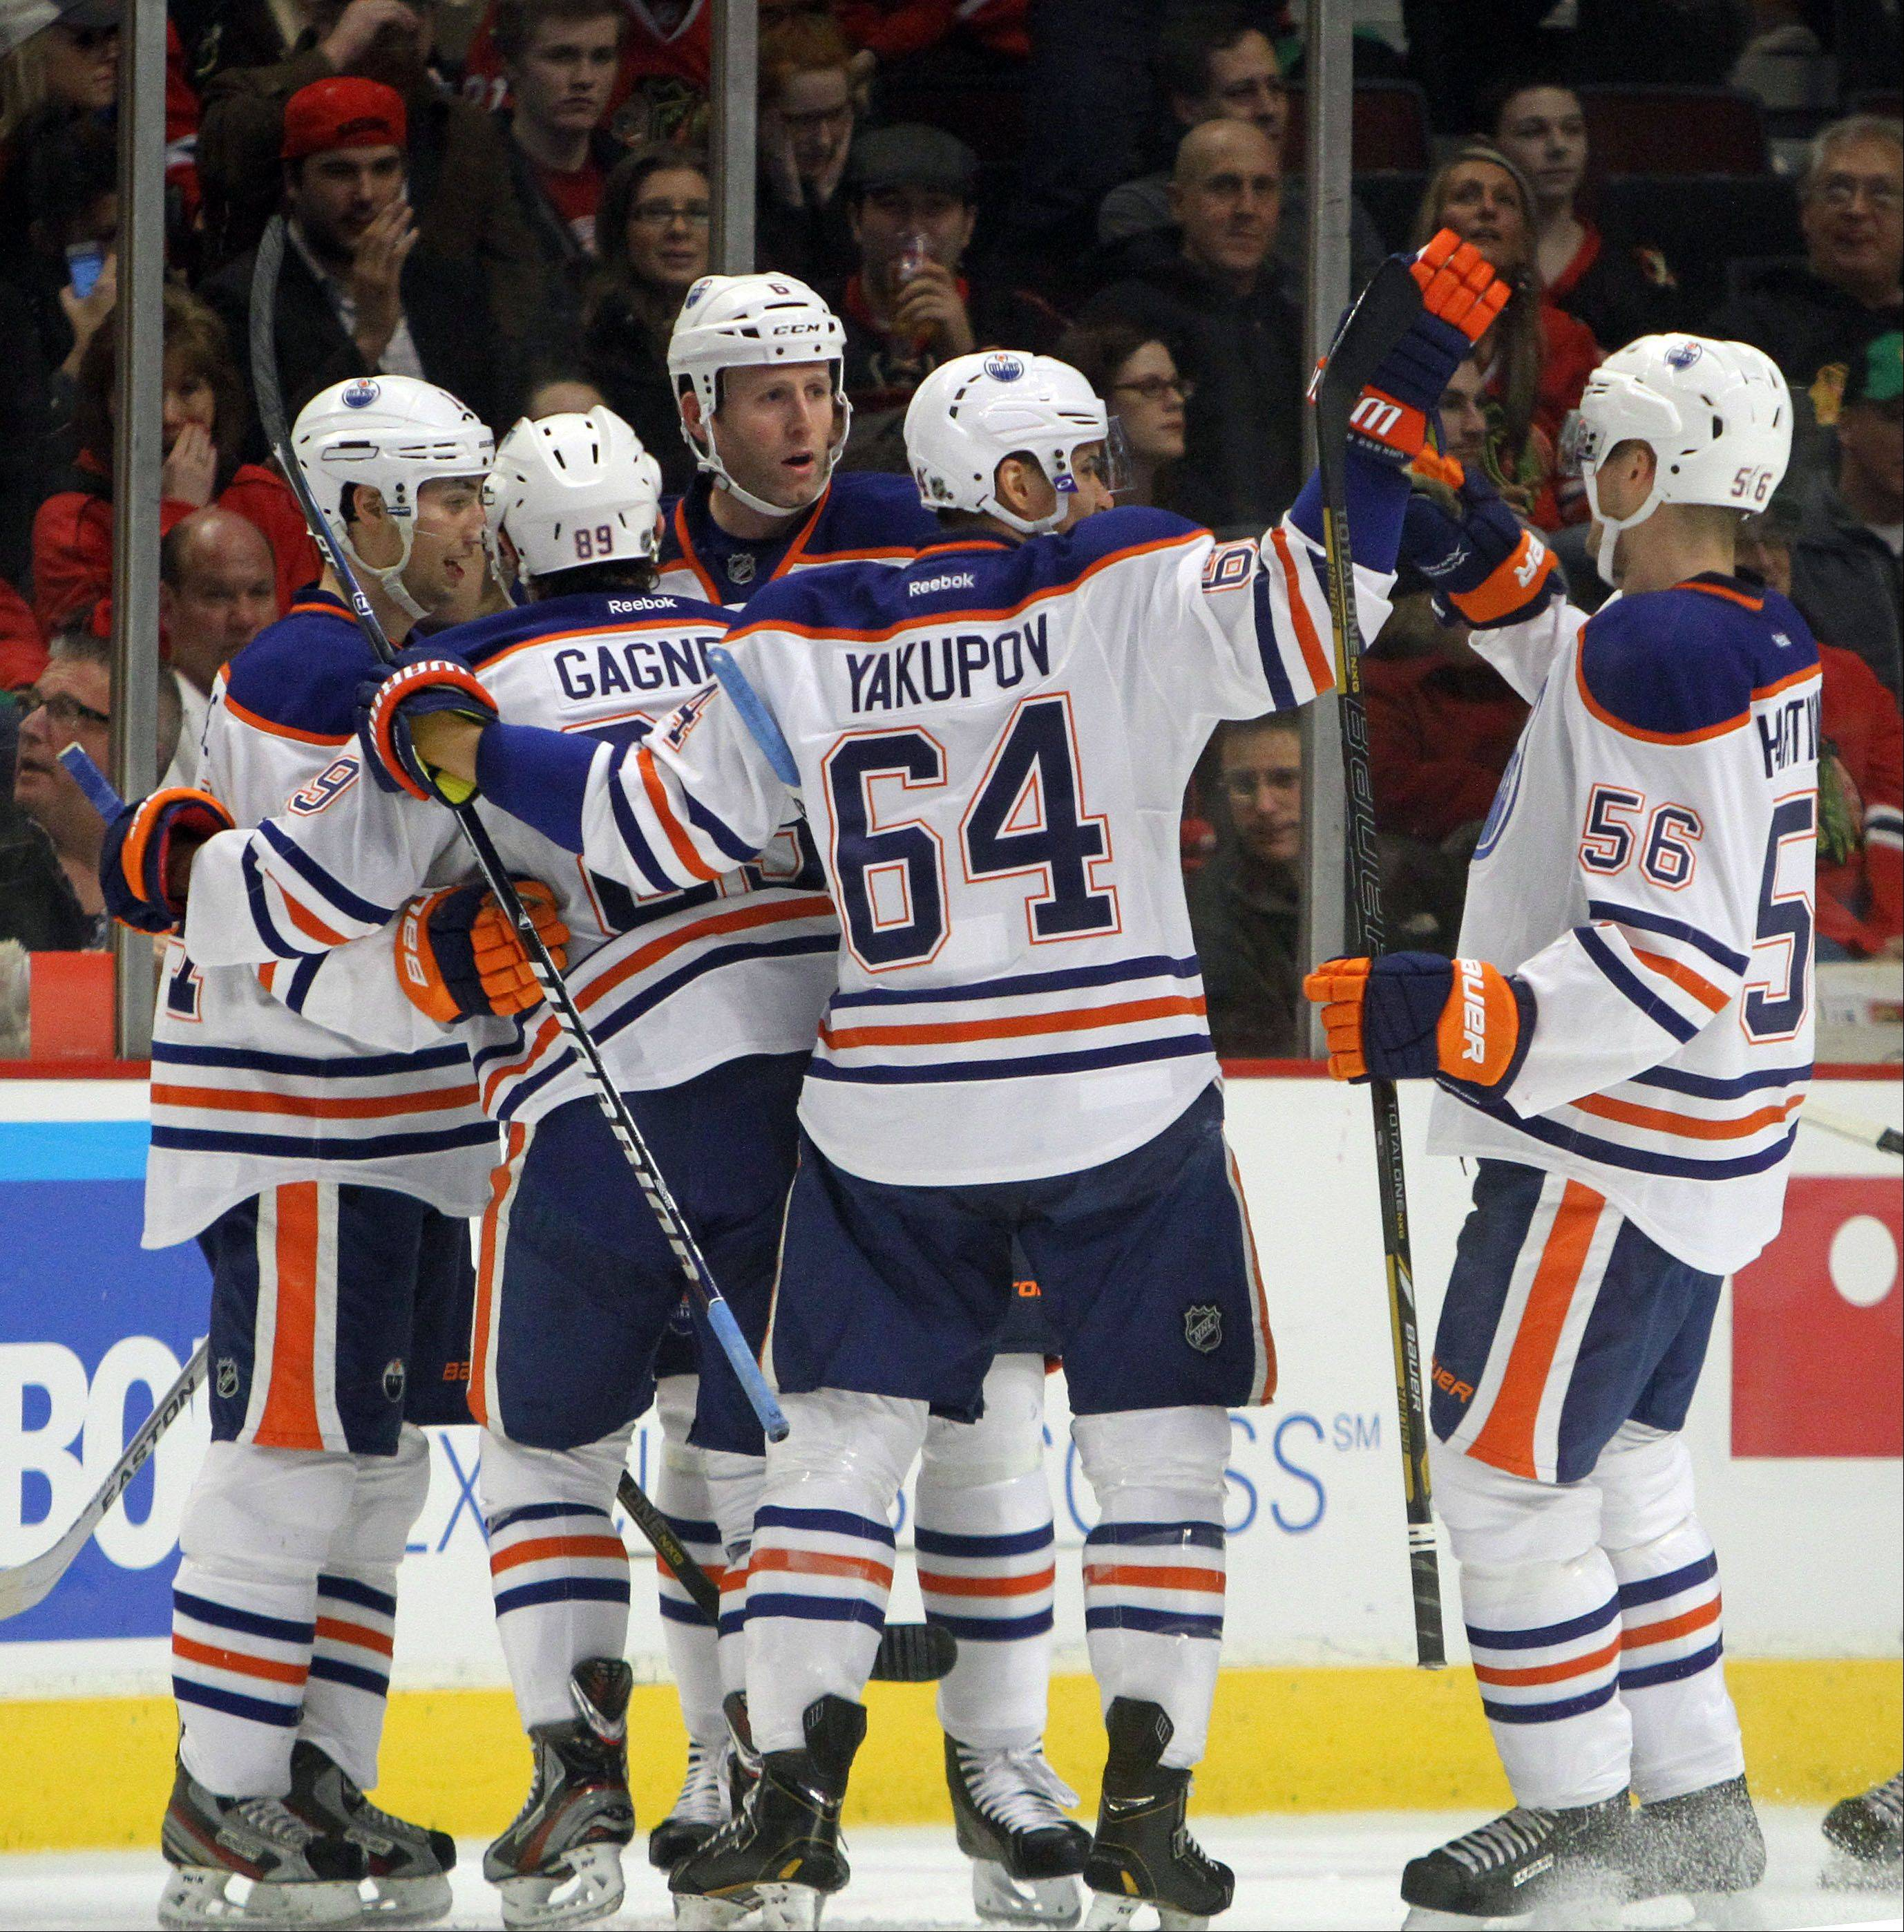 Edmonton Oilers players celebrate after a first-period goal during their game Sunday night at the United Center in Chicago.